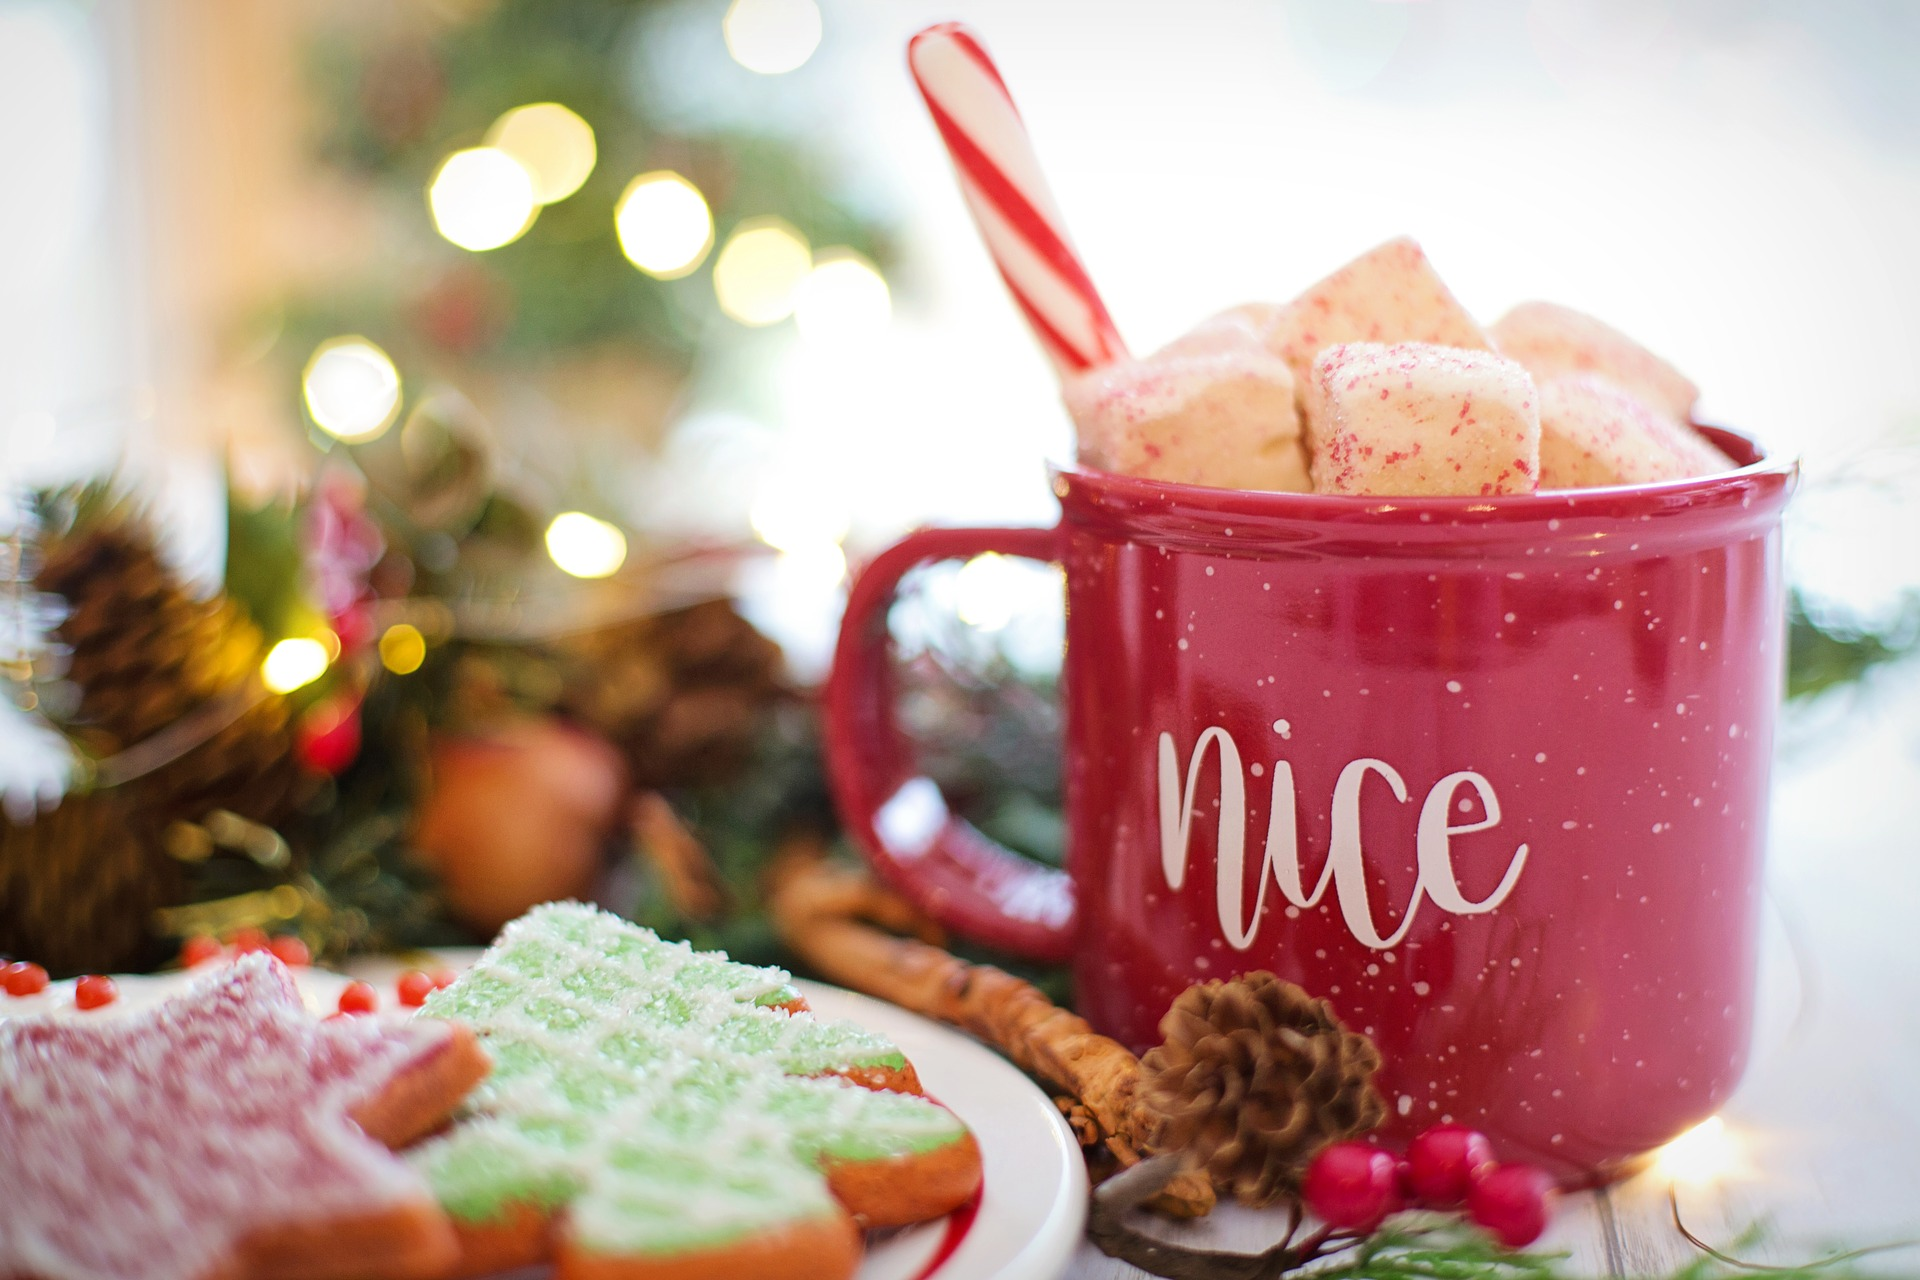 Clean & Pink Co winter spa treatments DIY holiday facial skin peels holistic health lifestyle brand Clean & Pink residential cleaning company hot chocolate recipe candy cane cranberry eggnog christmas recipes gingerbread peppermint.